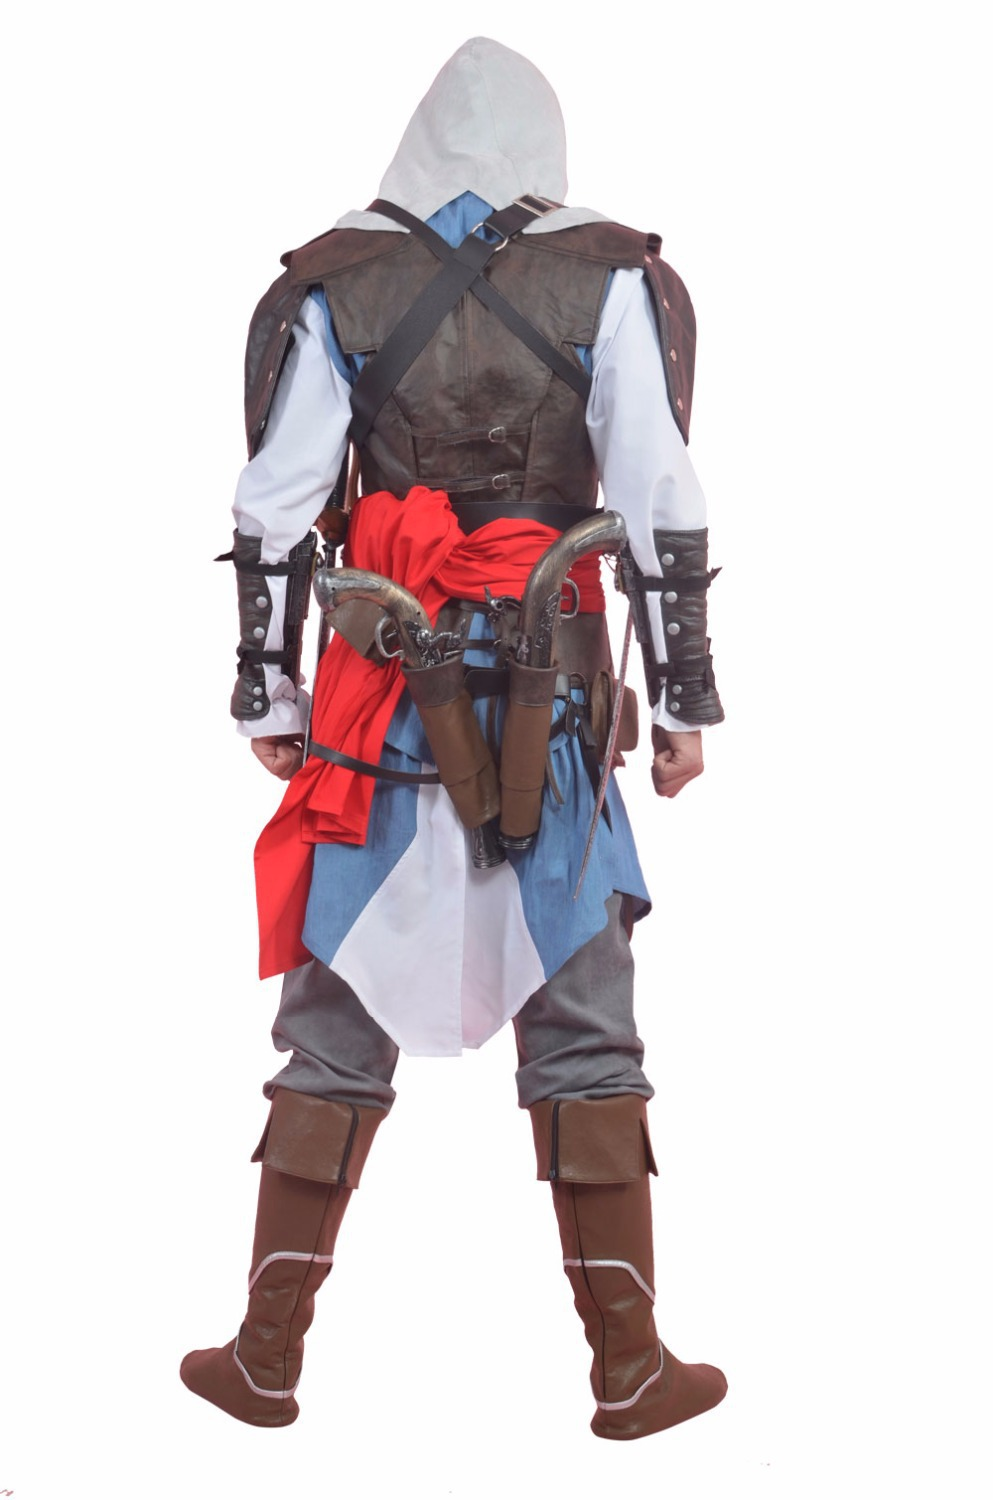 Free Shipping Assassins Creed 4 Cosplay Costume Assassins Creed 4 Edward  Canvey 6parts Deluxe Prop for Halloween / Party on Aliexpress.com | Alibaba  Group